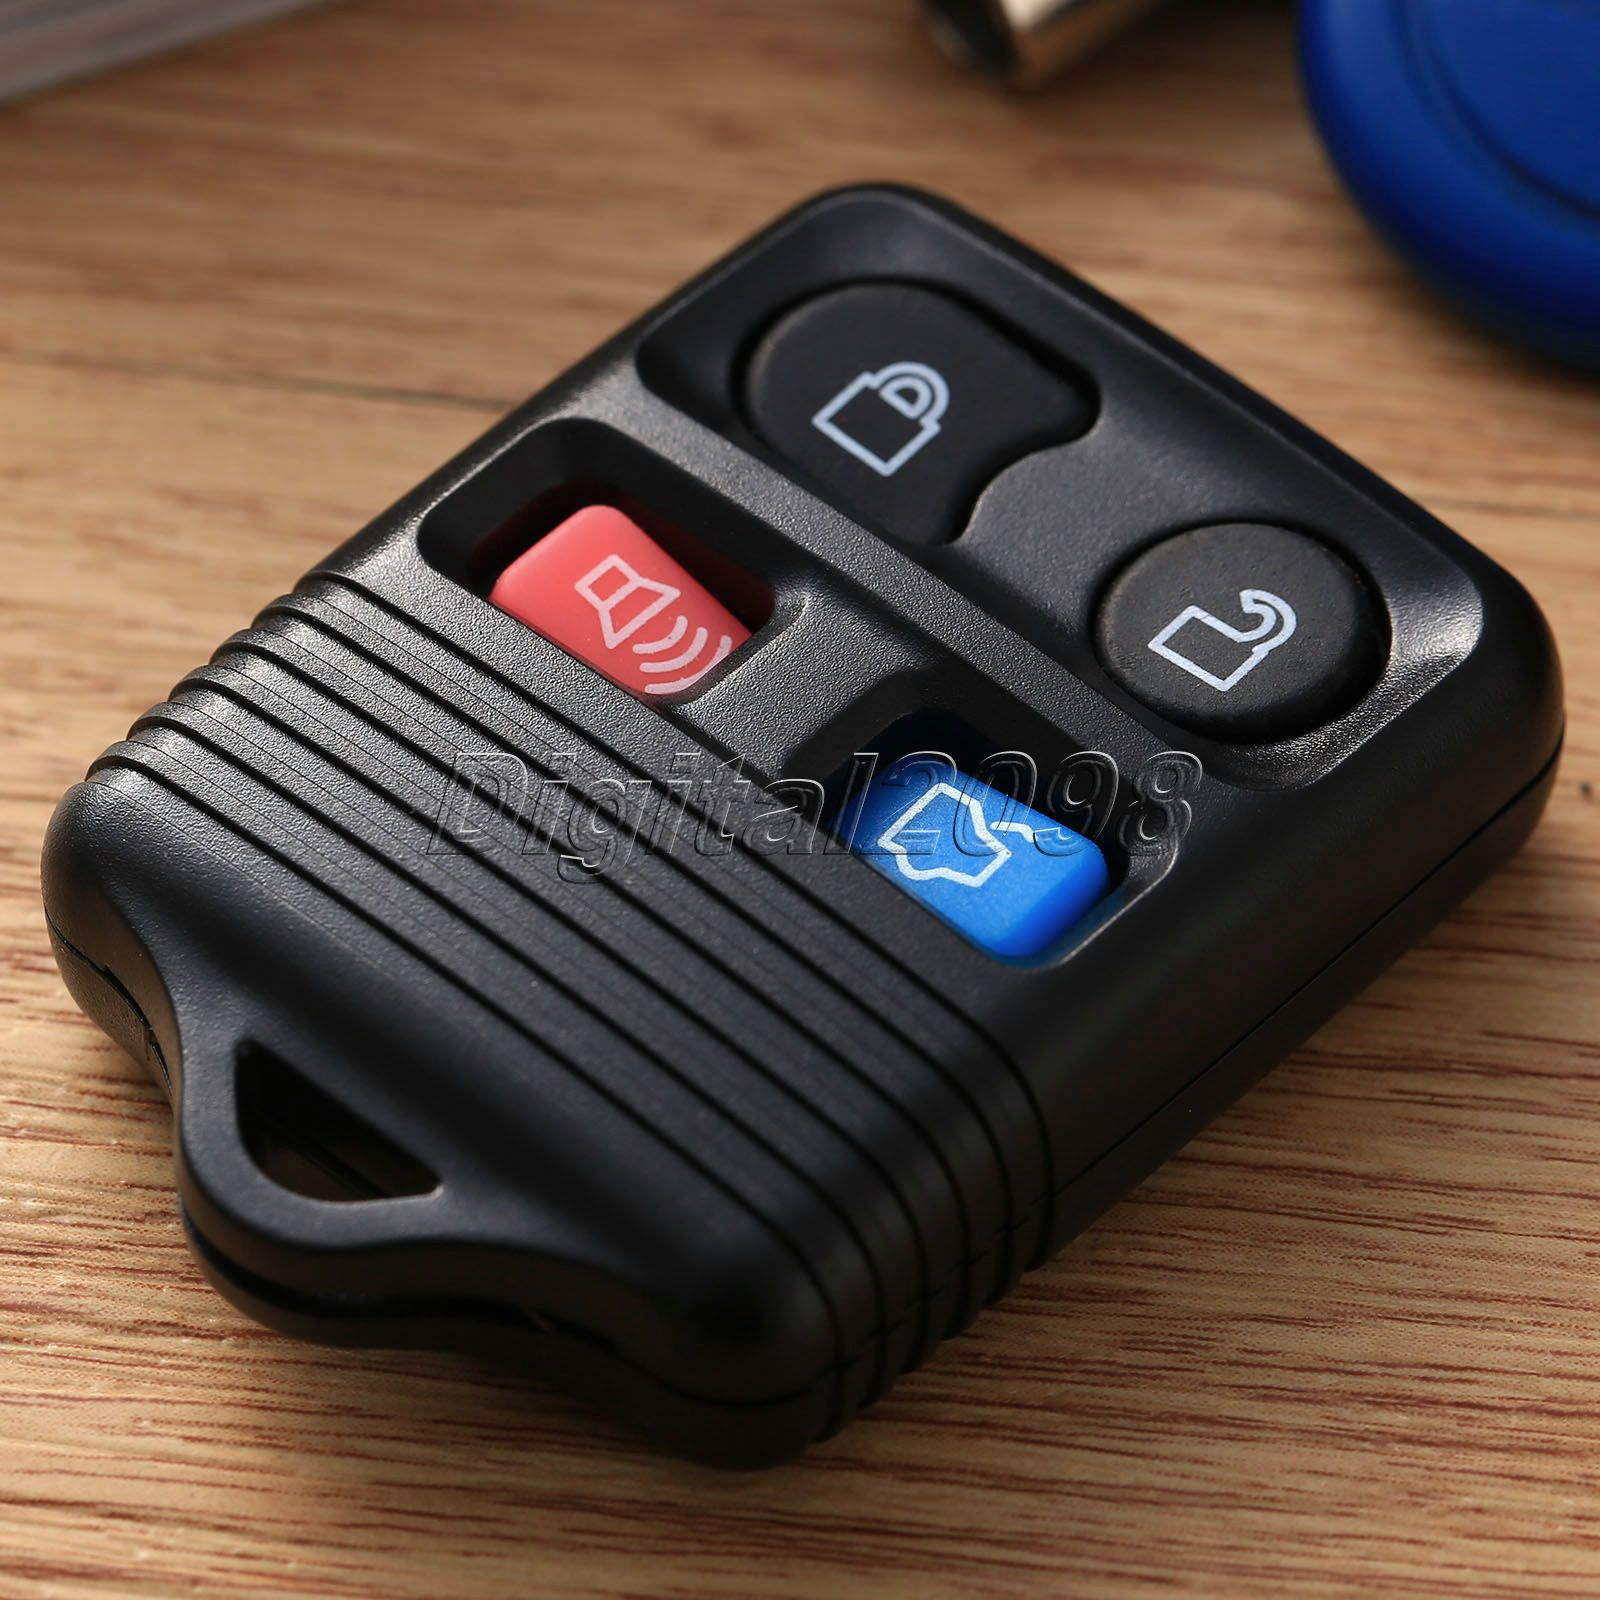 How To Program A Replacement Honda Keyless Entry Remote